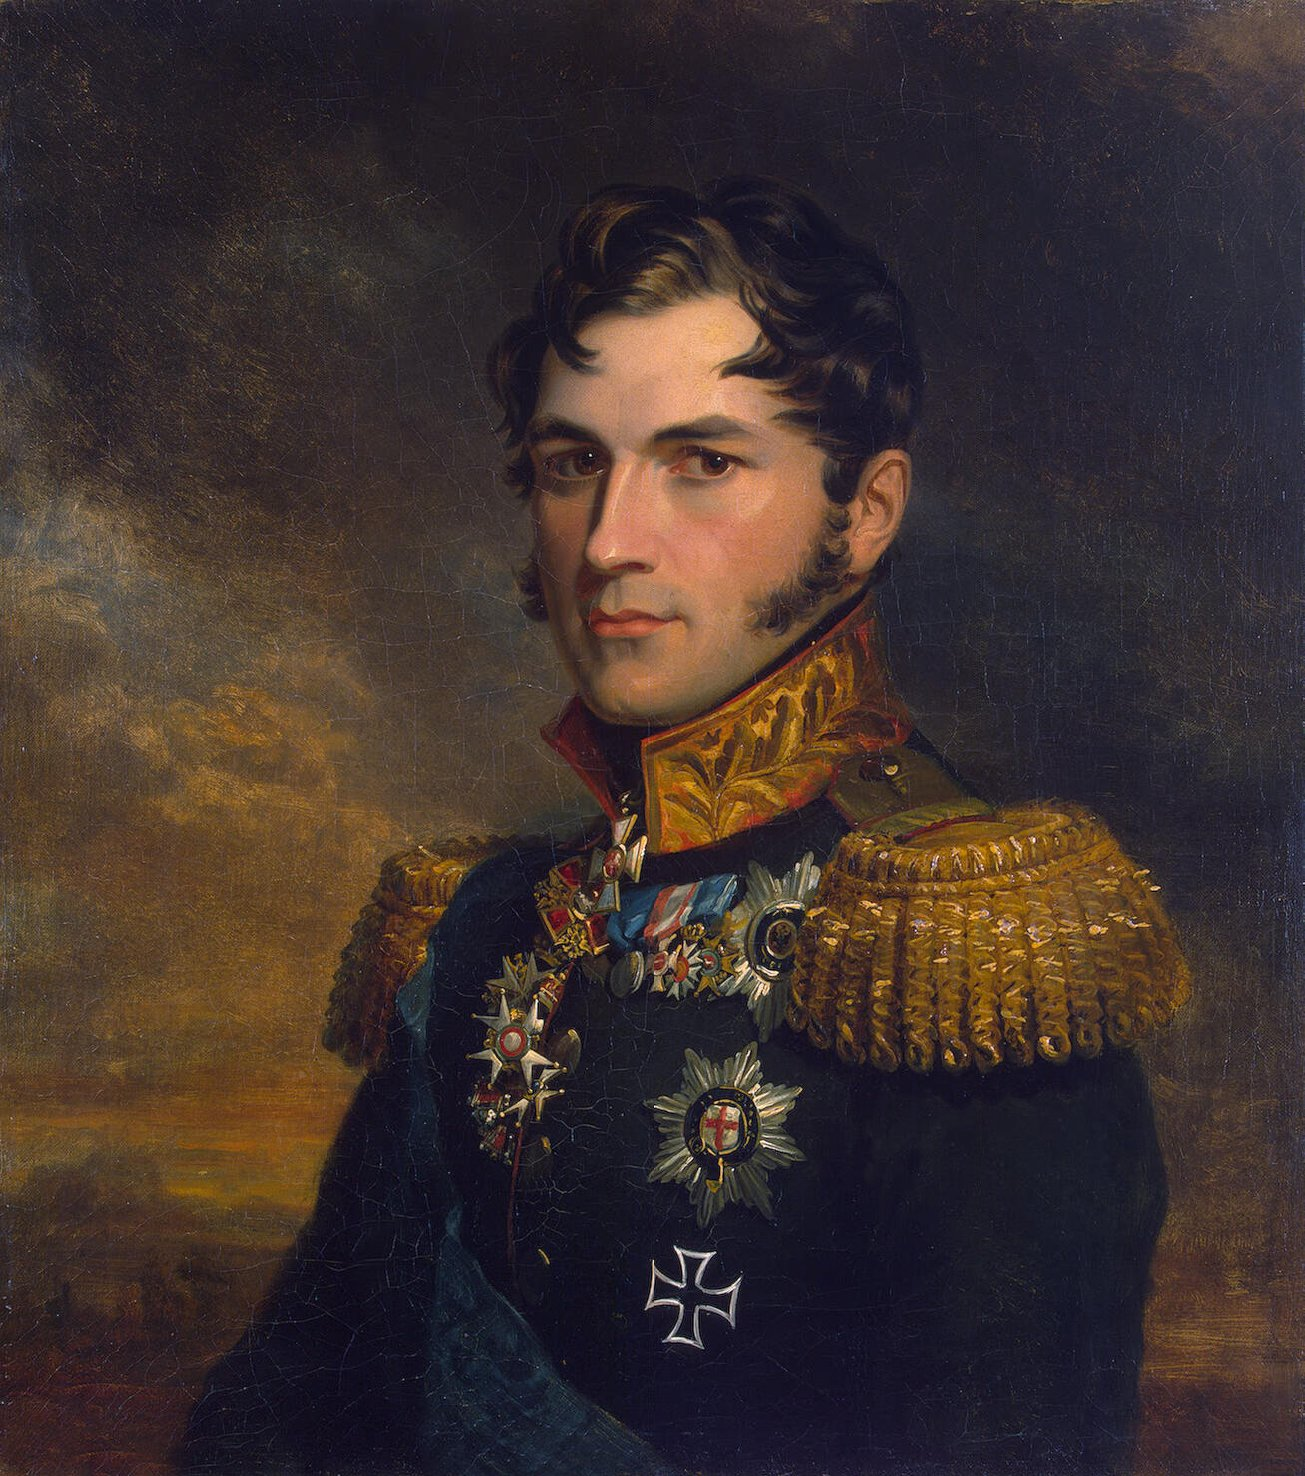 King Leopold I, elected founder of the hereditary monarchy of Belgium.